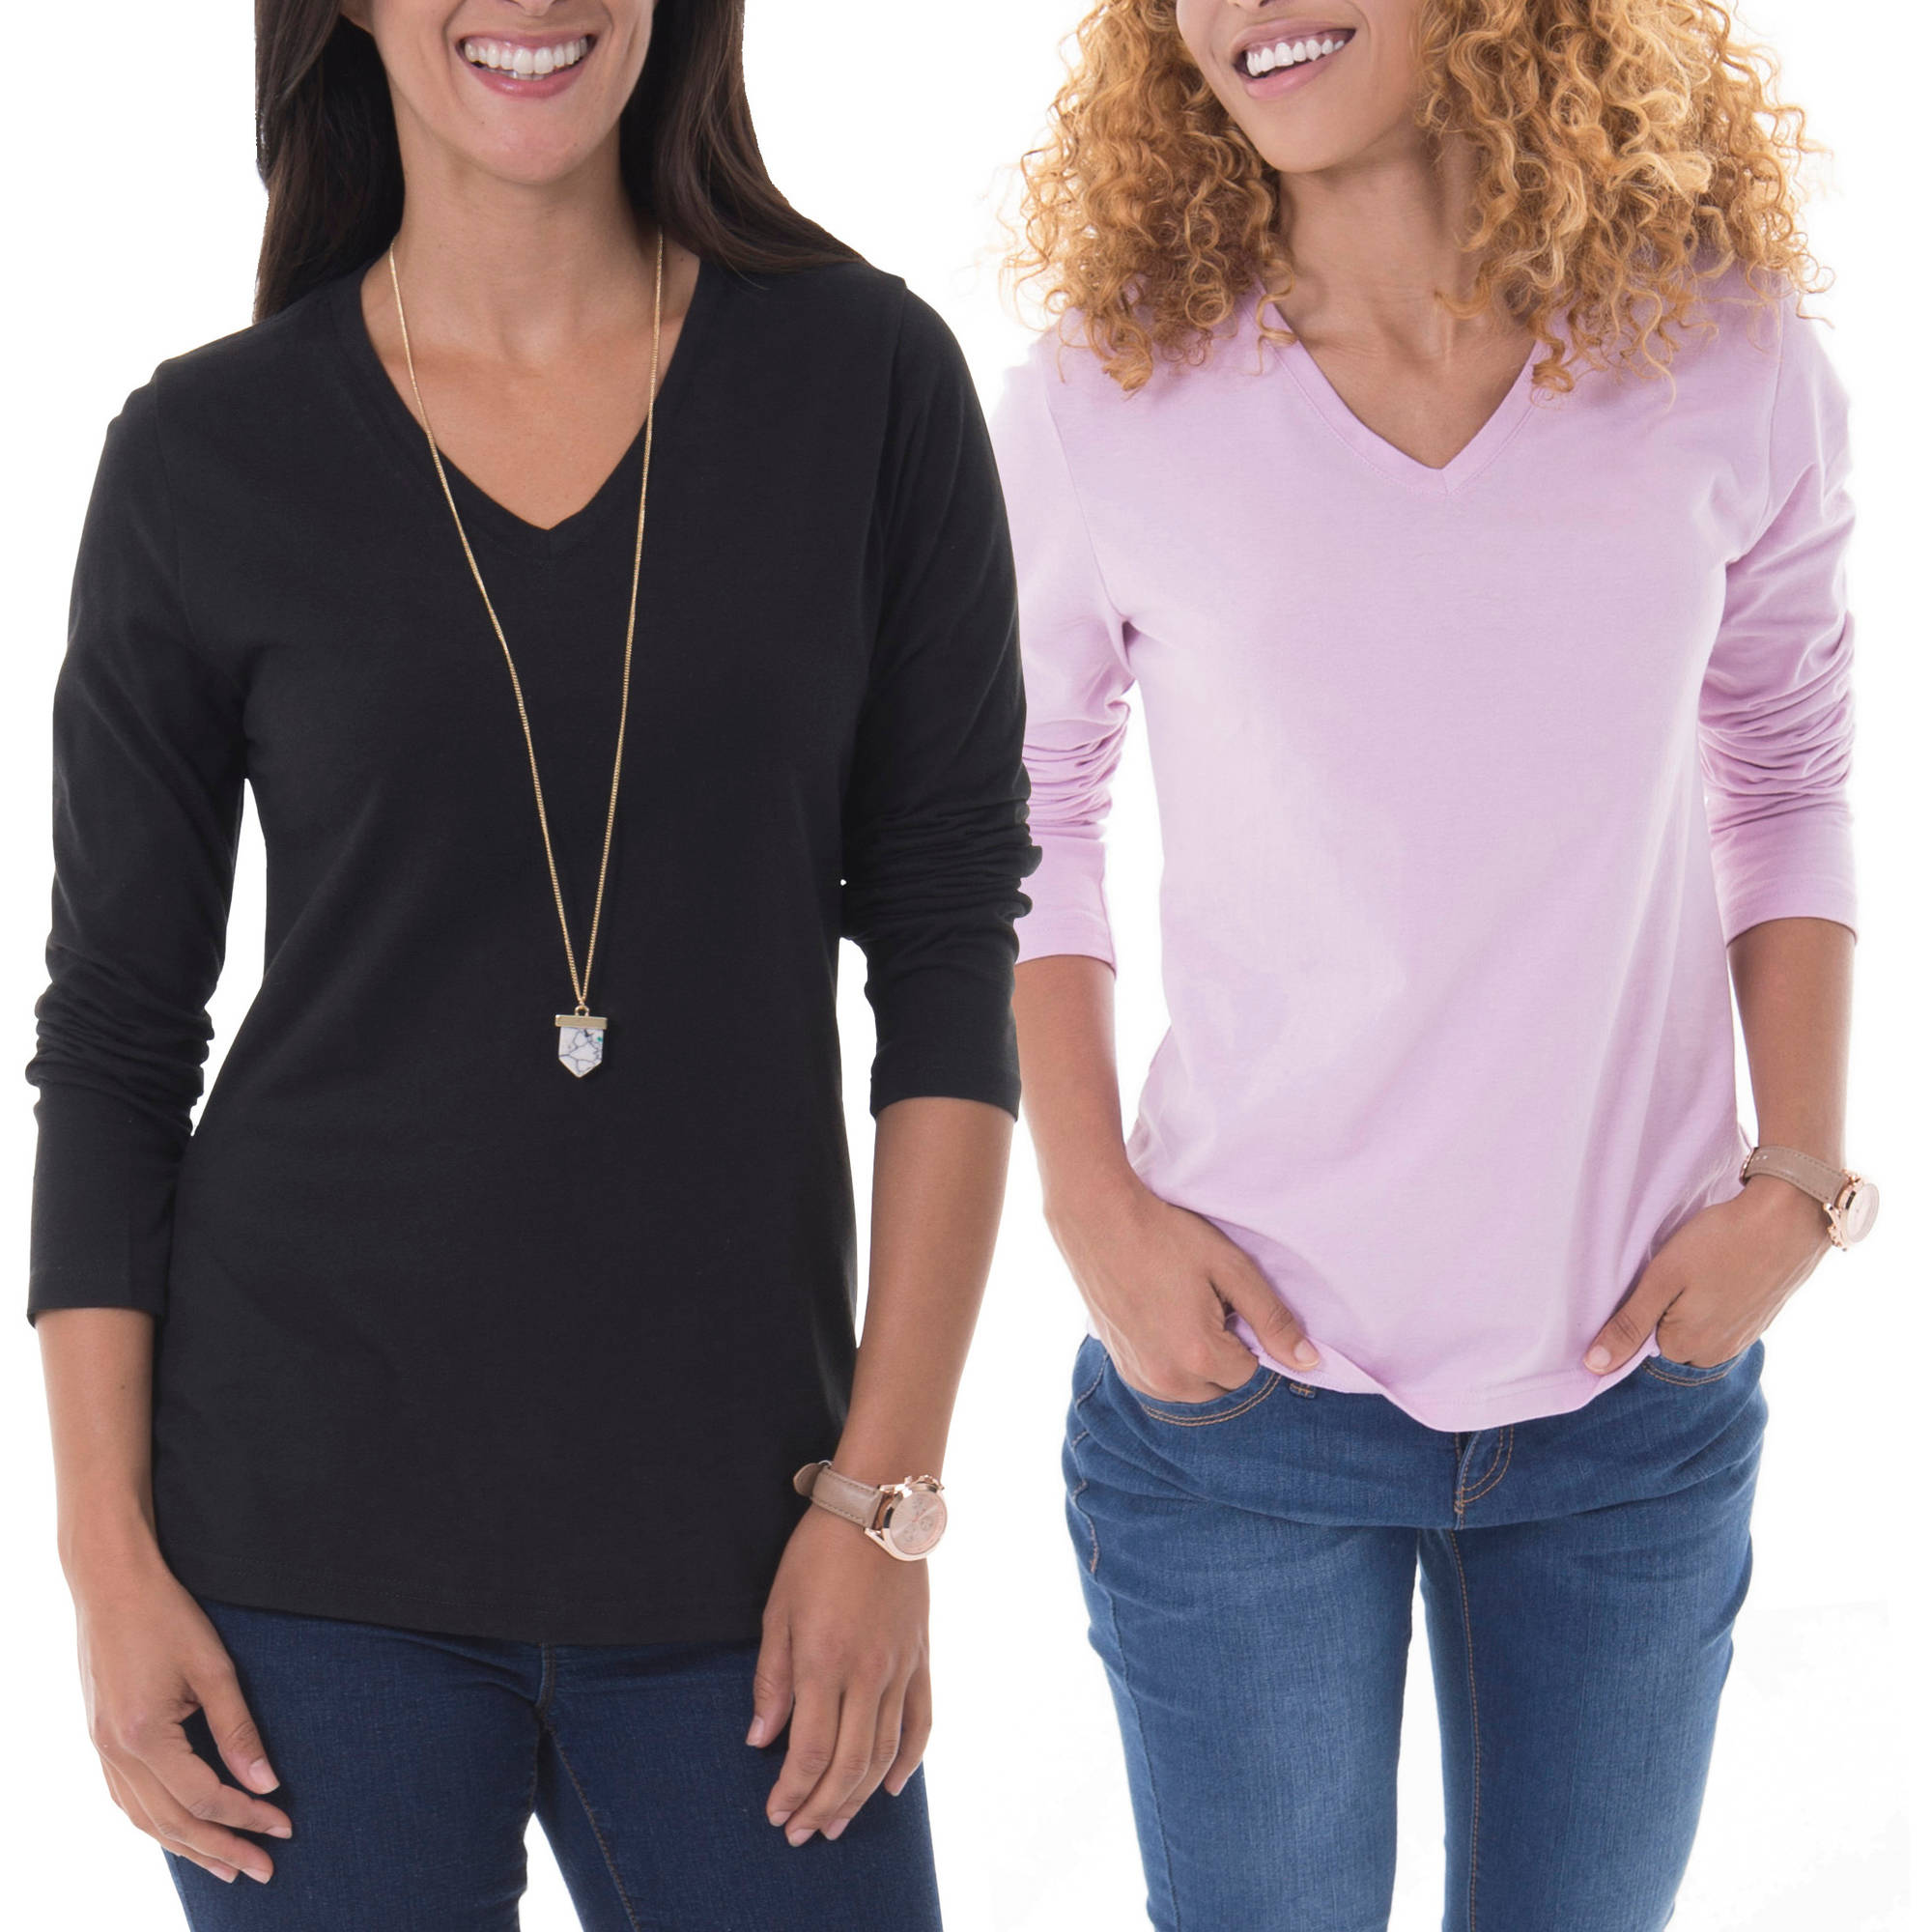 Faded Glory Women's Essential Long-Sleeve V-neck Tee 2-Pack Value Bundle